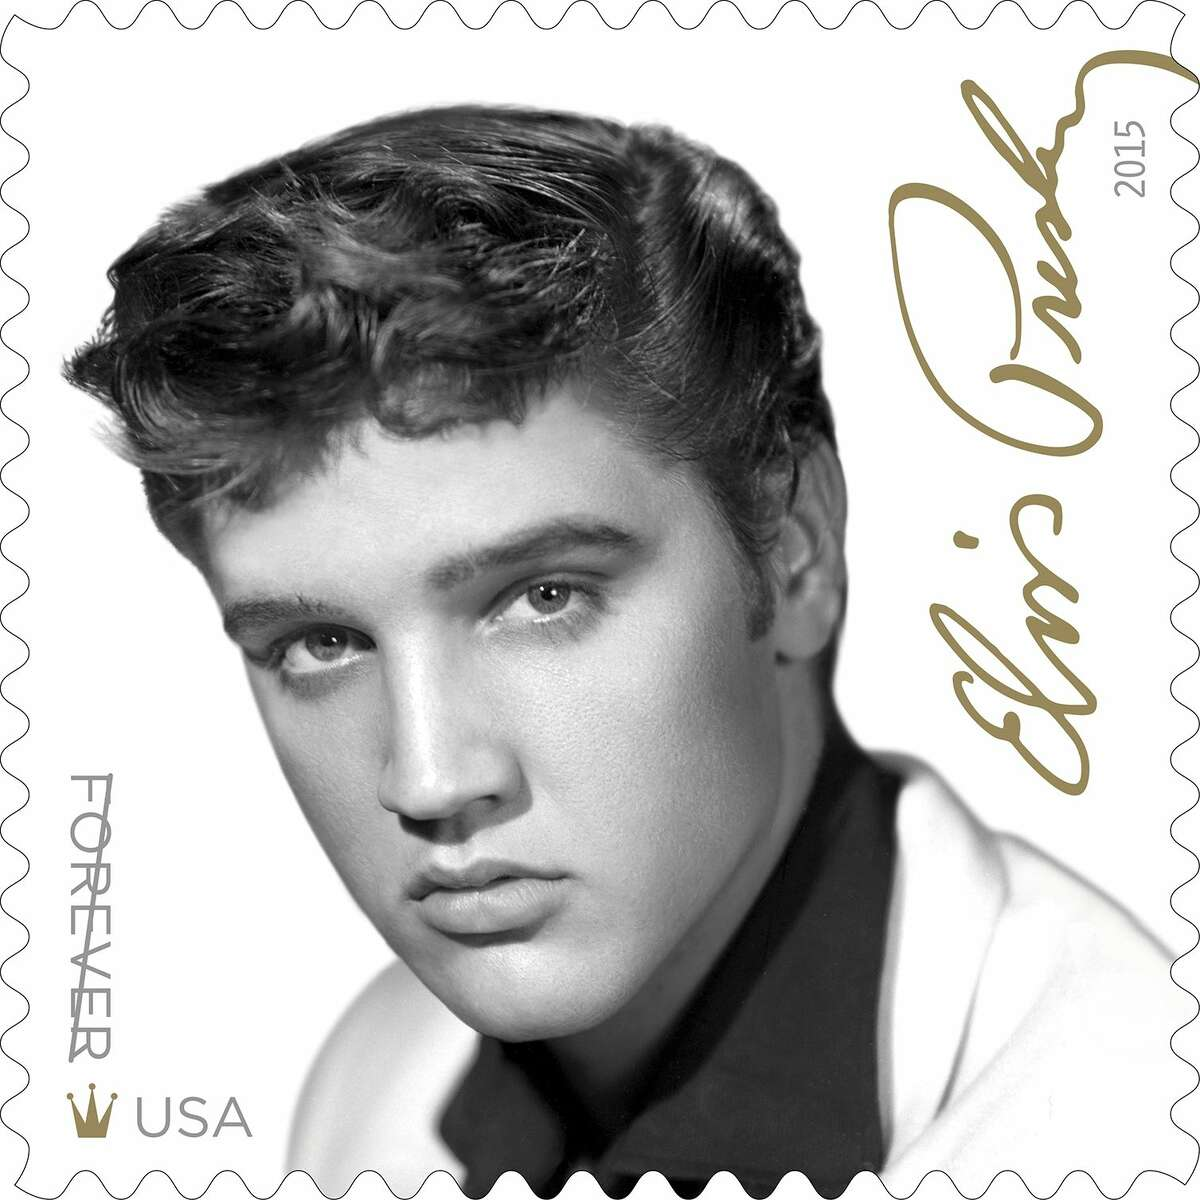 """This image released by the United States Postal Service shows the new Elvis Presley forever stamp available August 12. The USPS is also releasing an Elvis Presley greatest hits CD """"Forever Elvis"""" to go along with the new commemorative stamp. (USPS via AP)"""